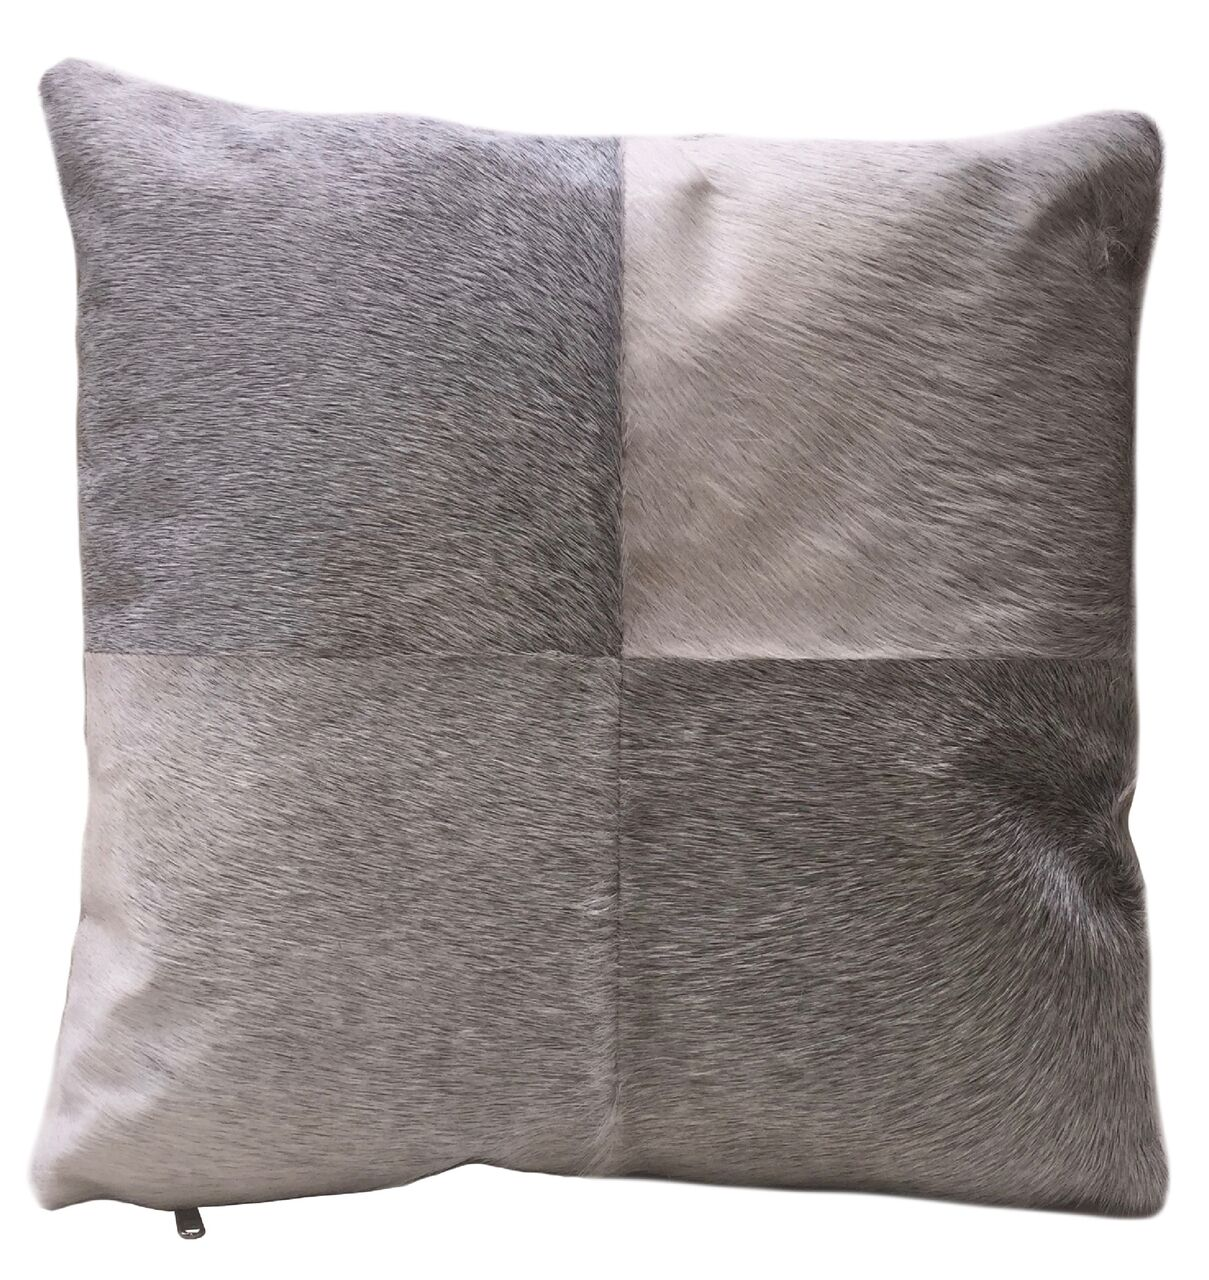 Jett Double Sided Leather Throw Pillow